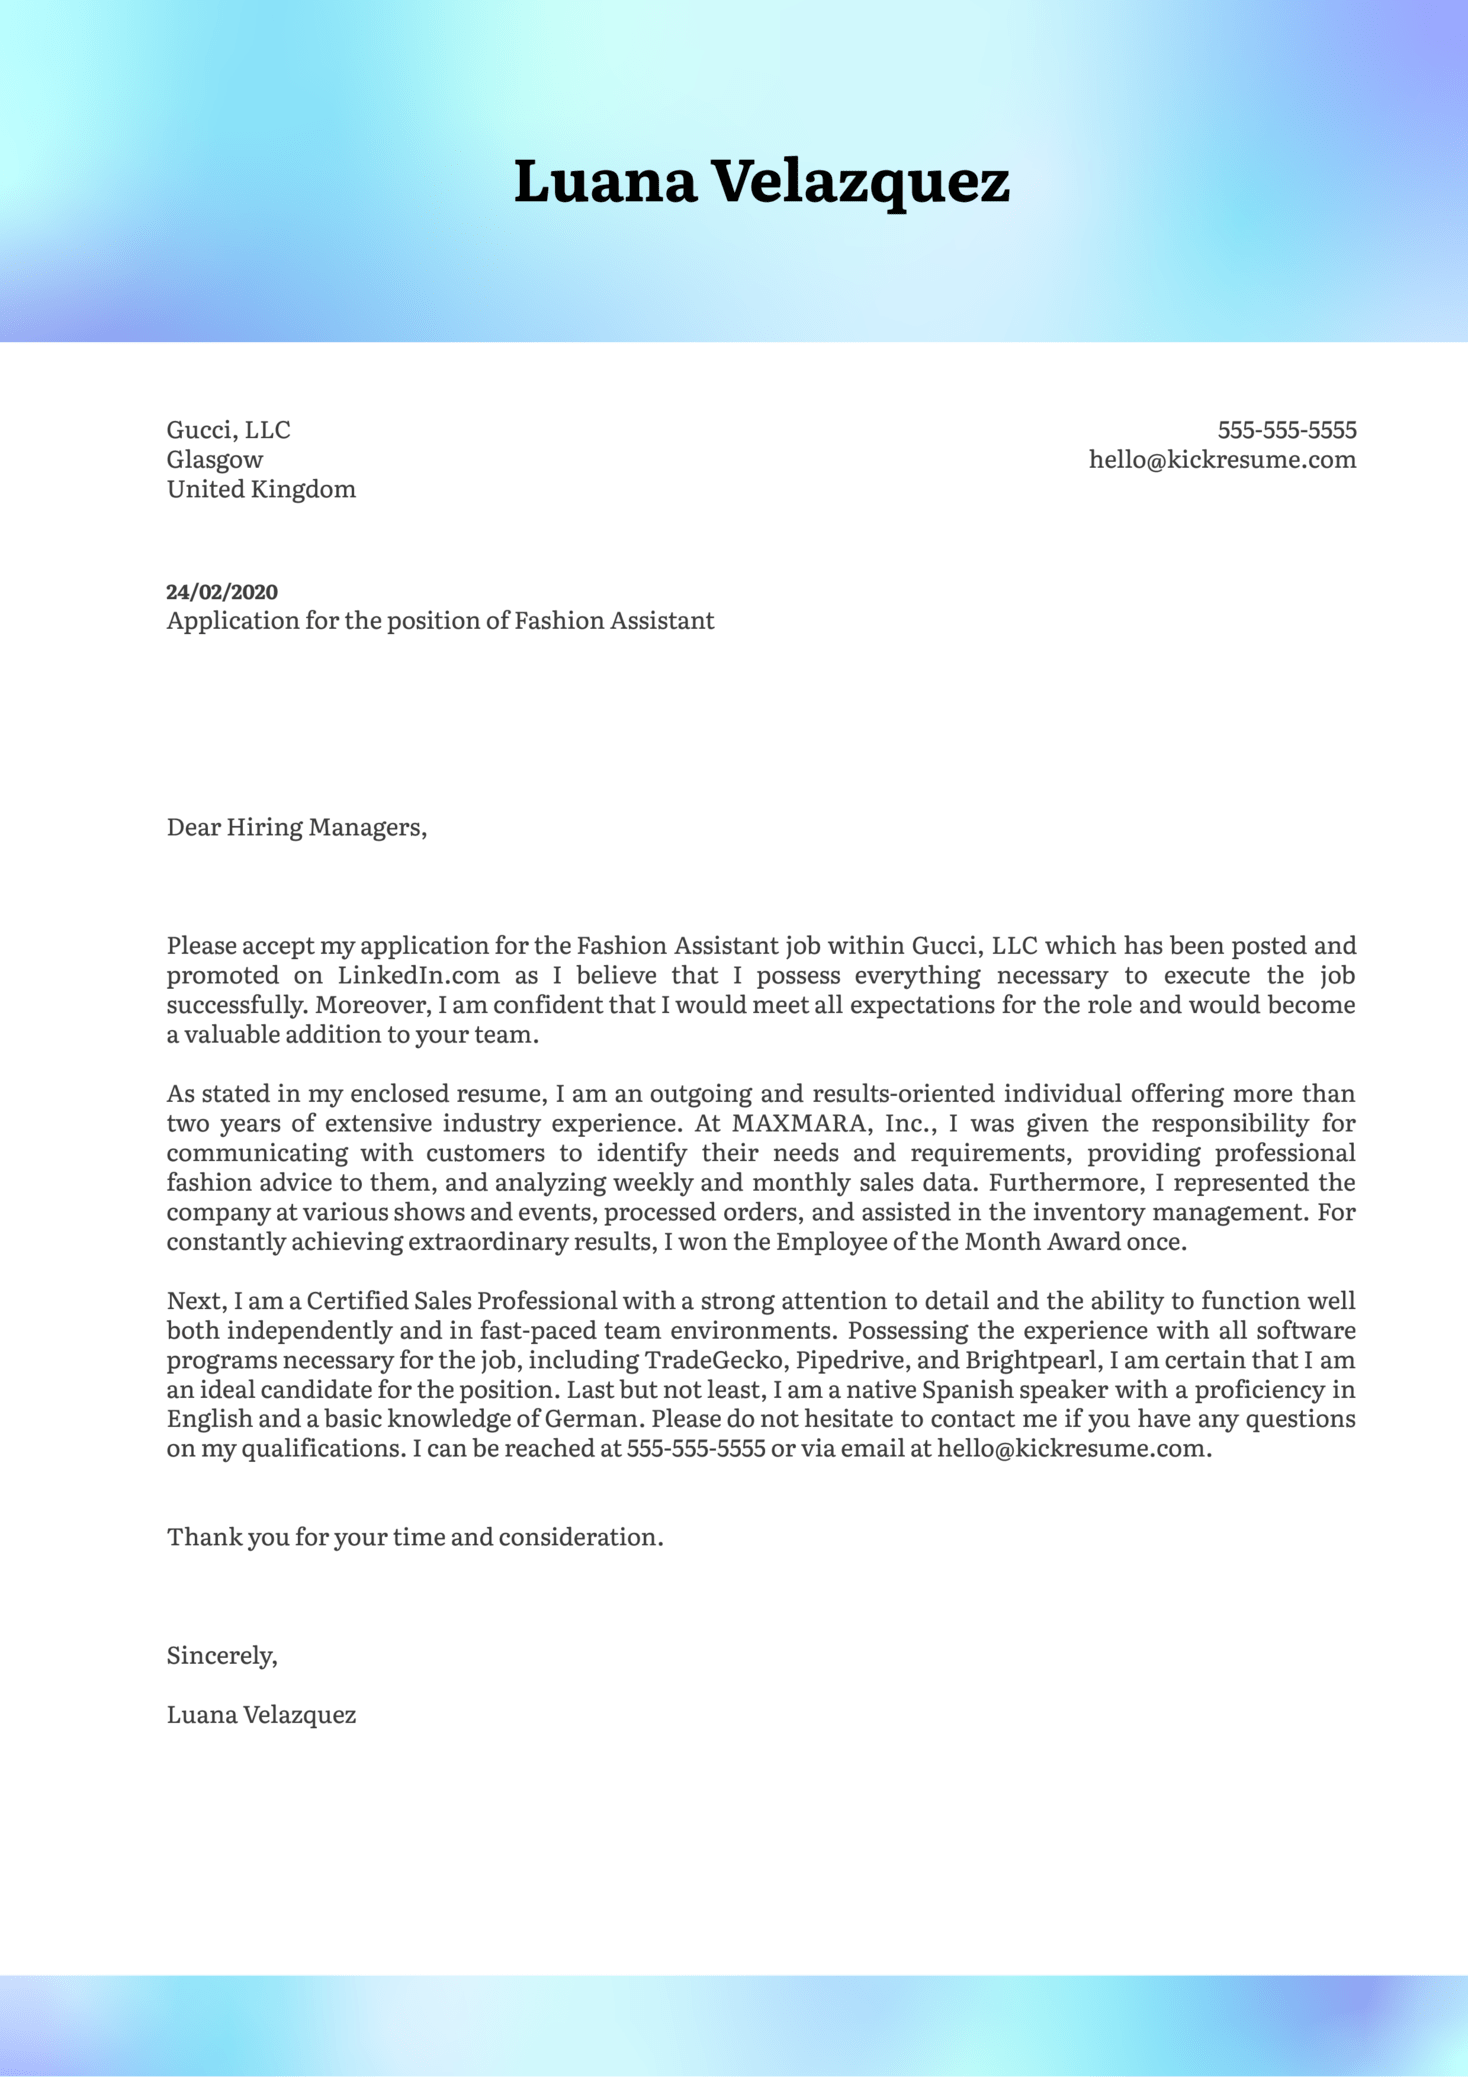 Fashion Assistant Cover Letter Example